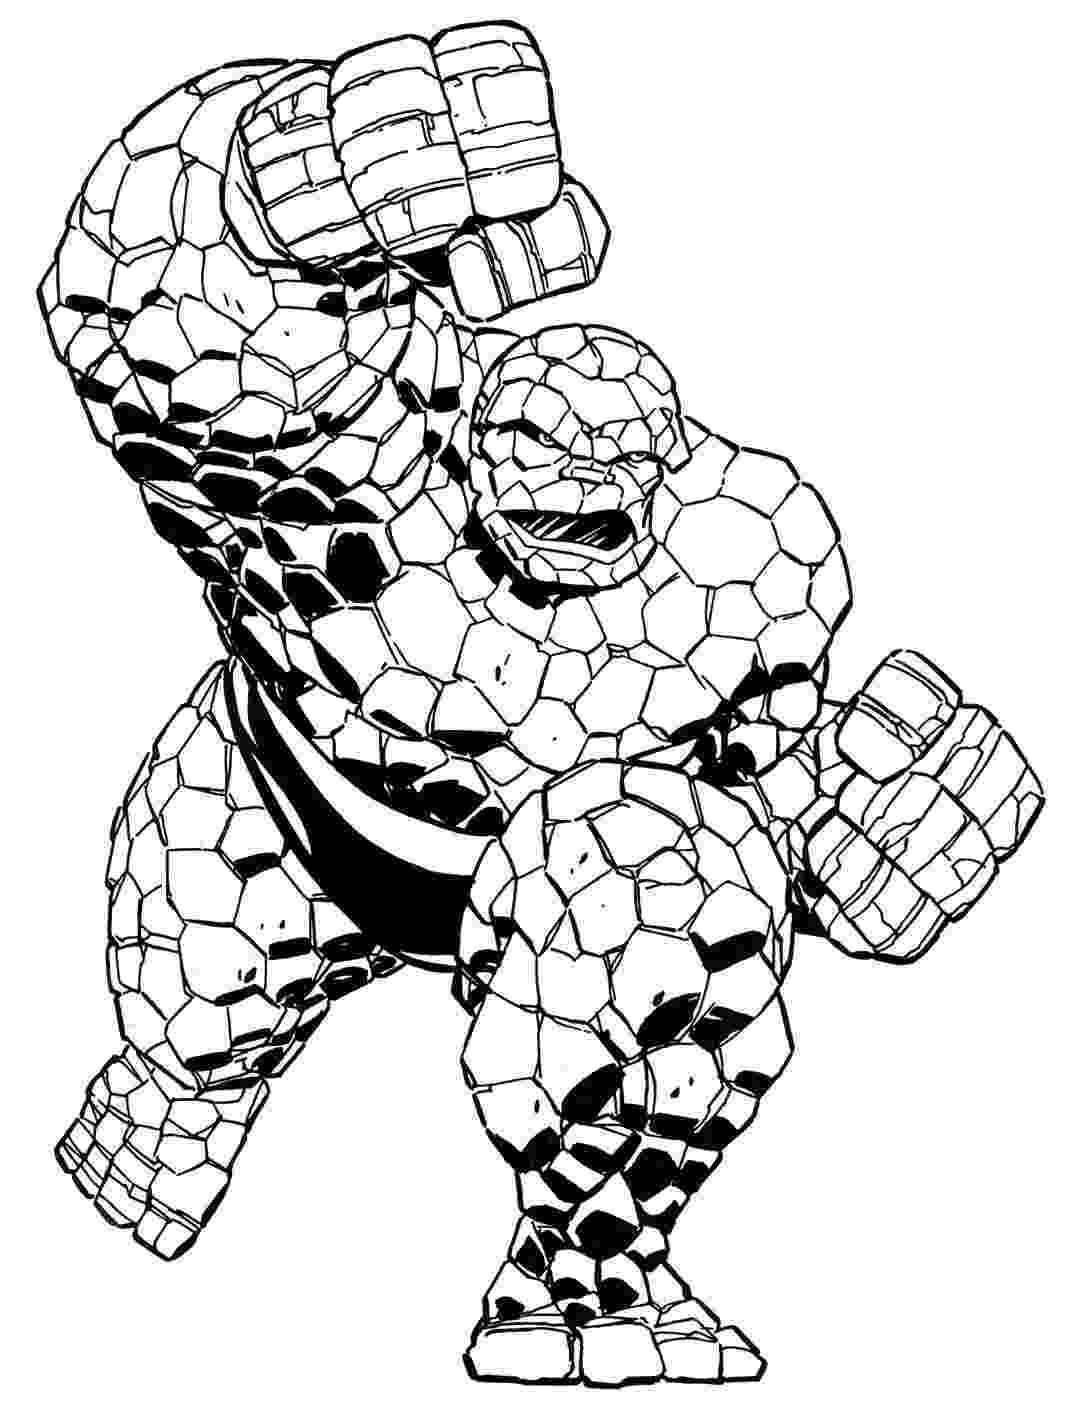 superhero coloring superhero coloring pages to download and print for free superhero coloring 1 4